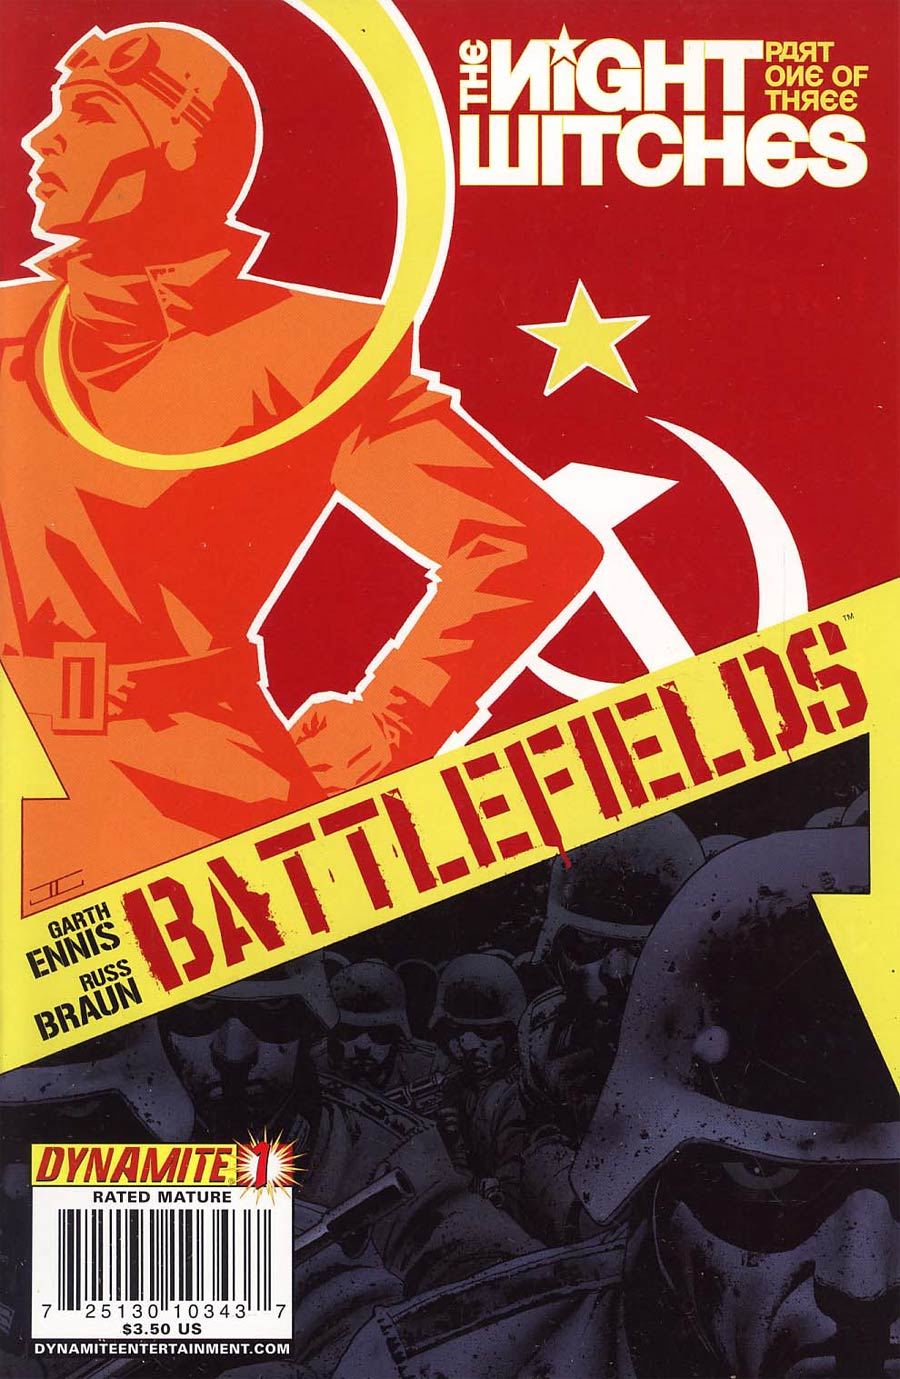 Garth Ennis Battlefields The Night Witches #1 Regular John Cassaday Cover